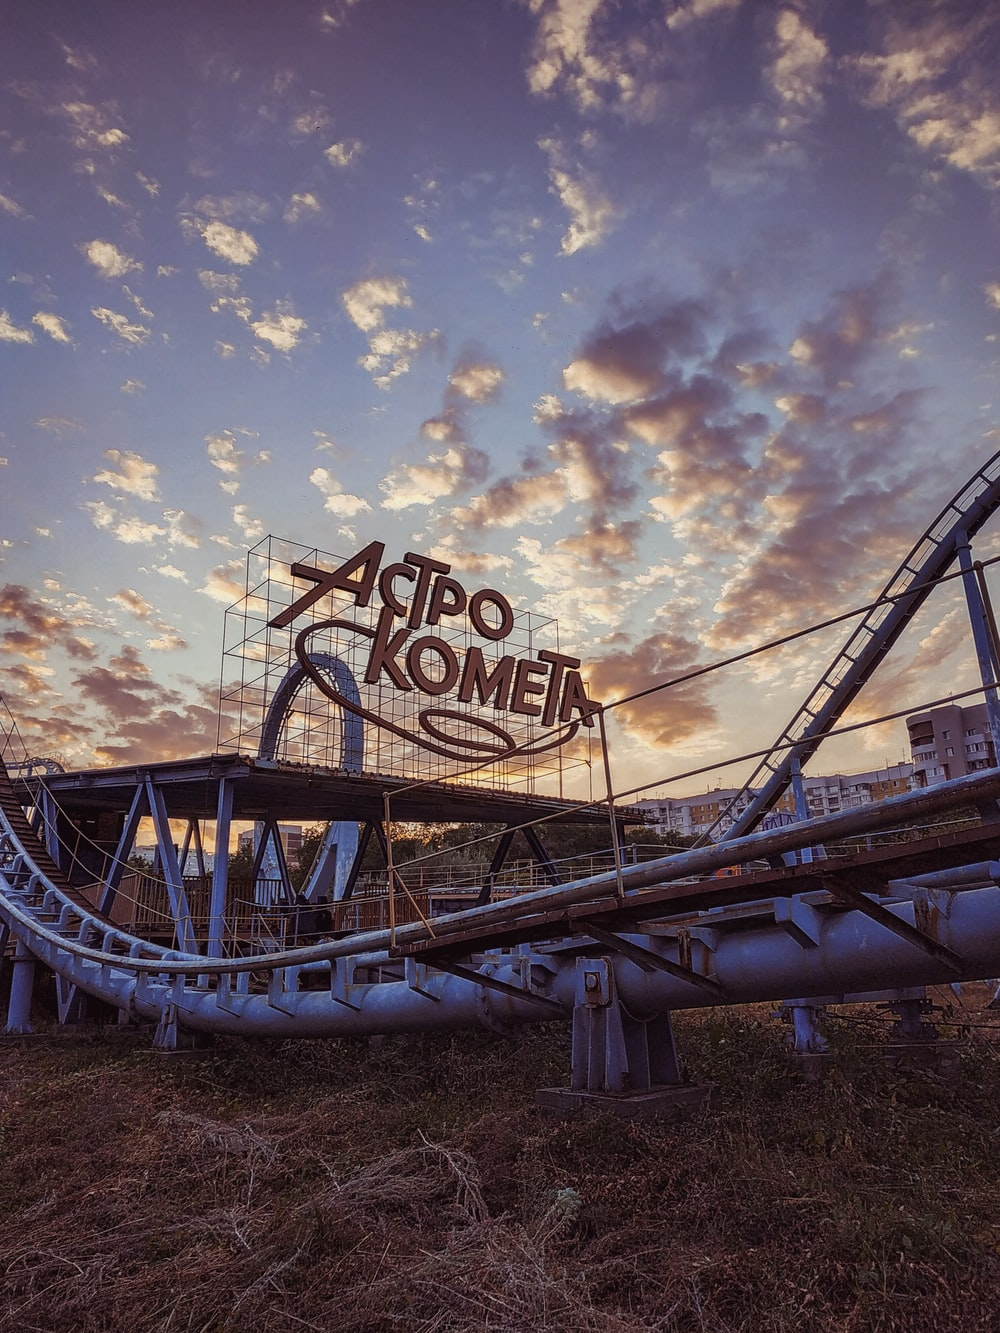 blue and white roller coaster under blue sky during daytime